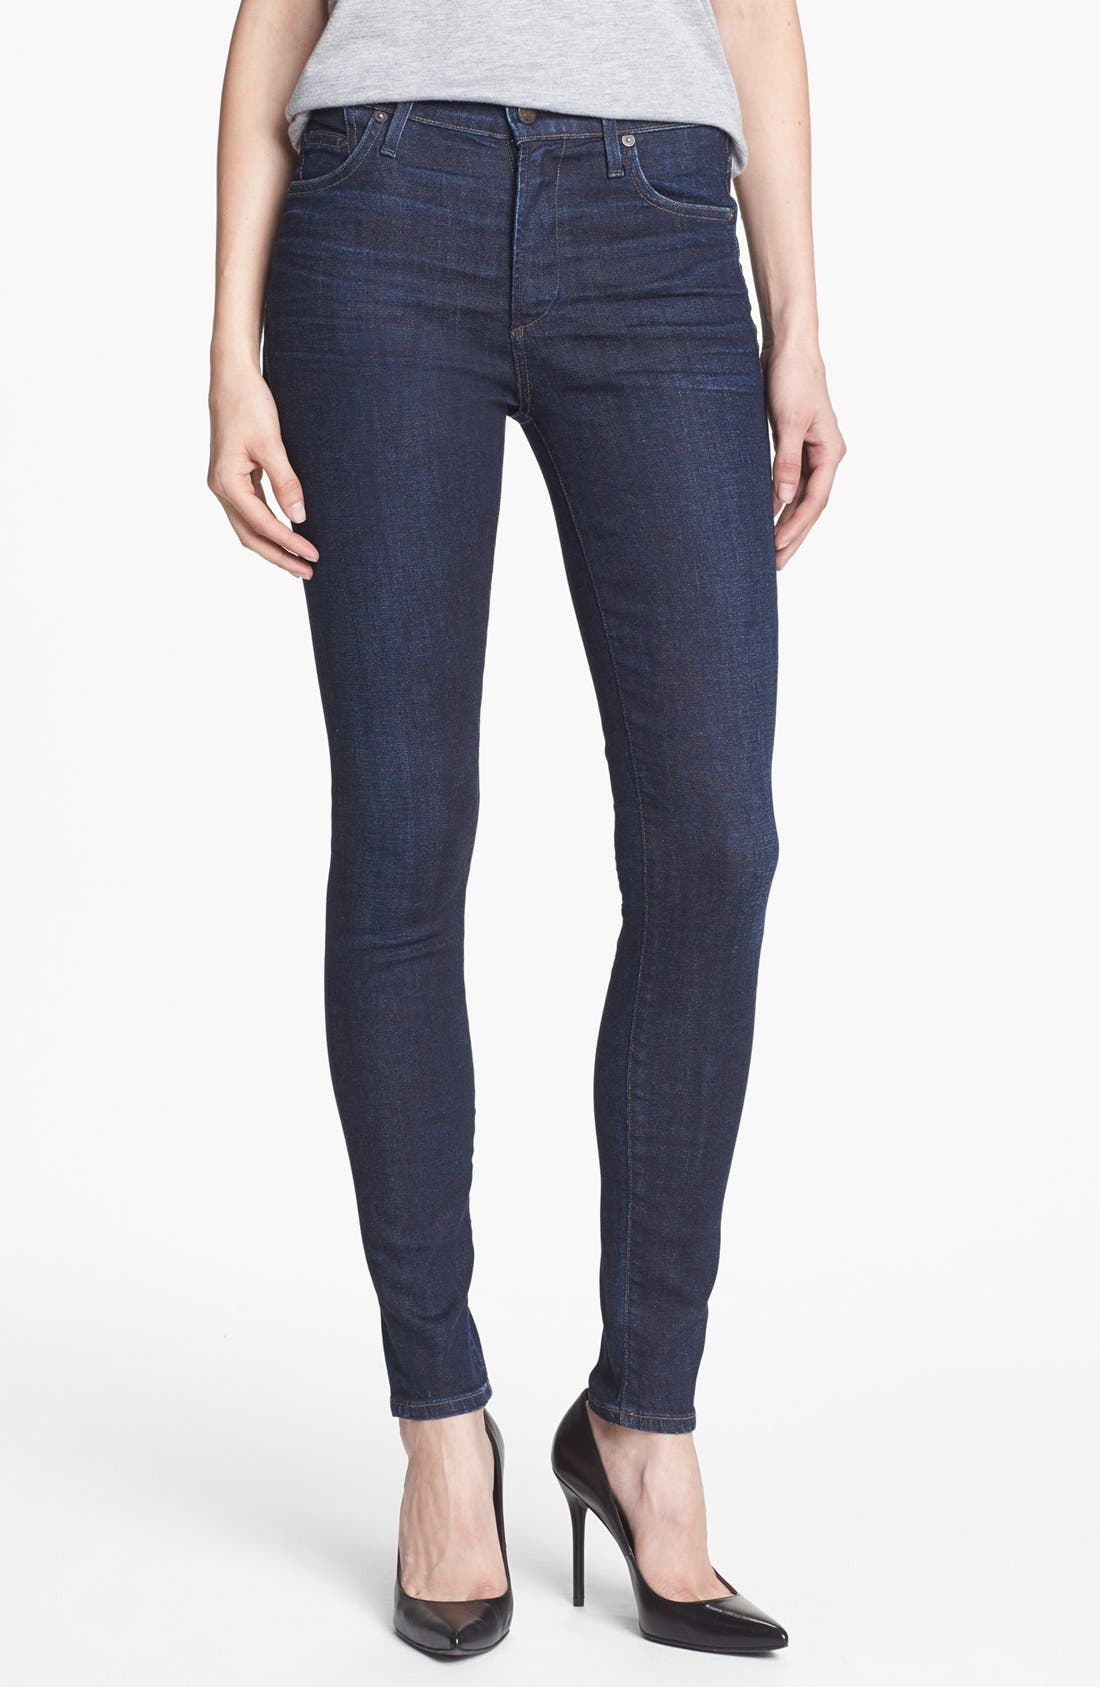 'Rocket' High Rise Skinny Jeans,                             Main thumbnail 1, color,                             420